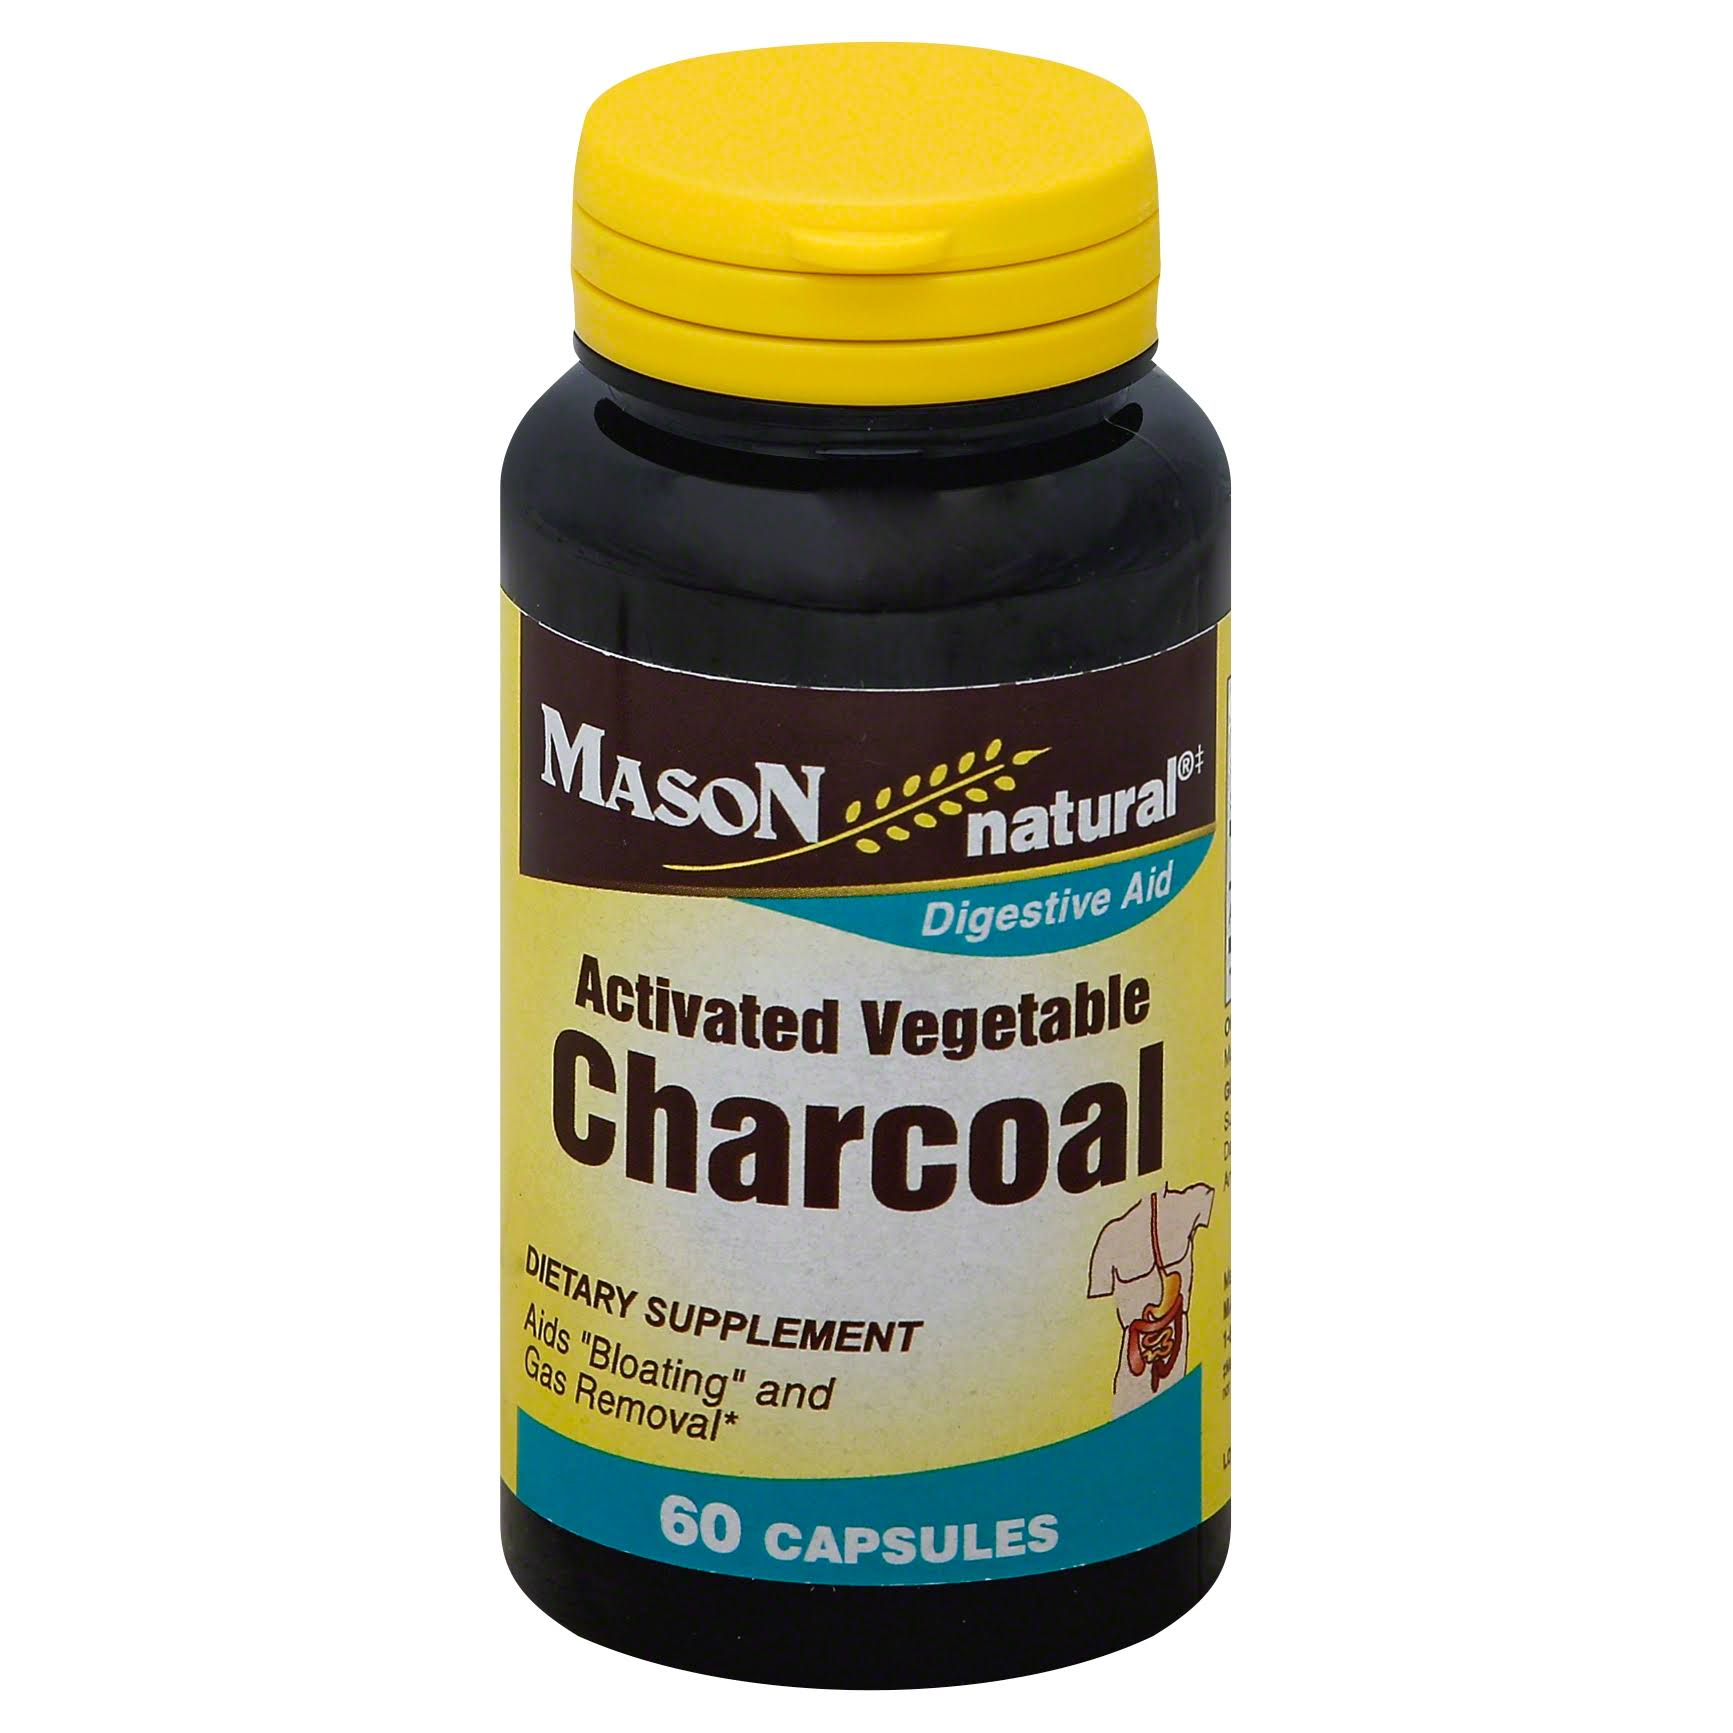 Mason Natural Activated Vegetable Charcoal Capsules - Digestive Aid, 60ct